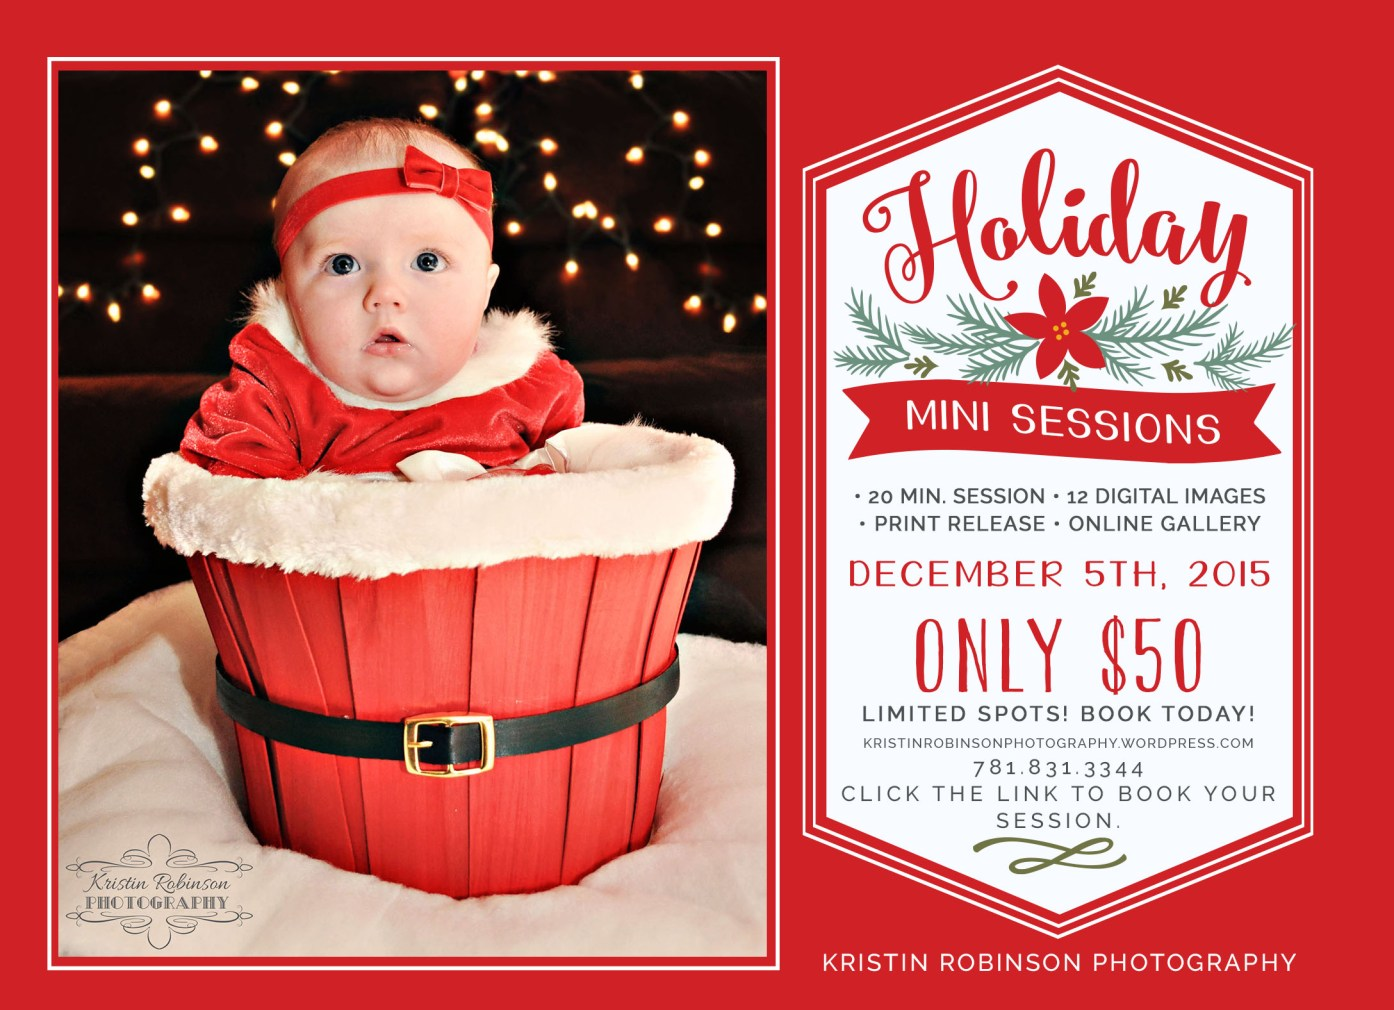 holiday mini sessions with online payments option